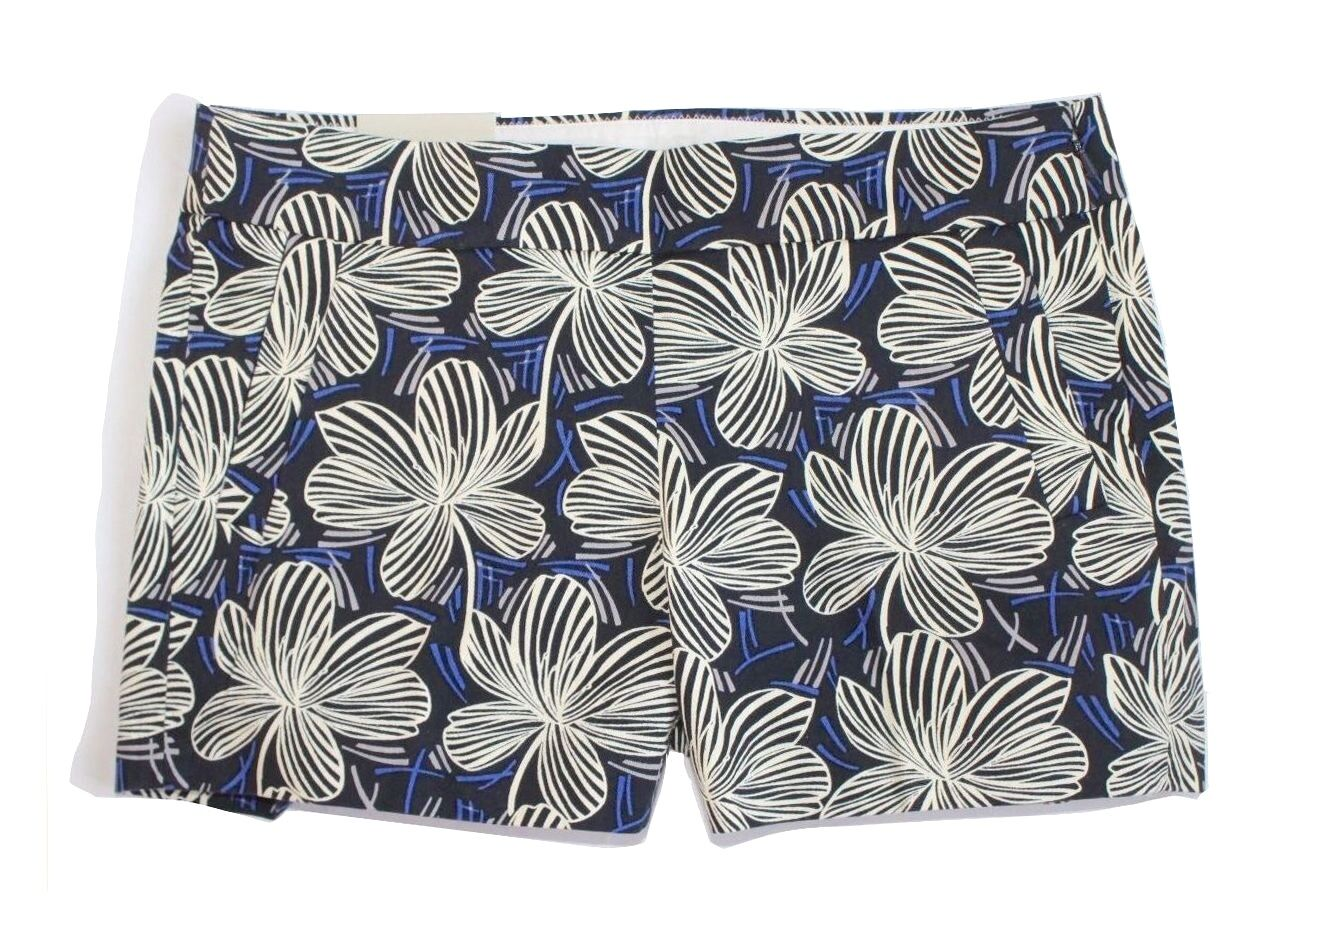 J Crew Factory - Women's 12 (L) - NWT - bluee Hibiscus Floral Print Cotton Shorts